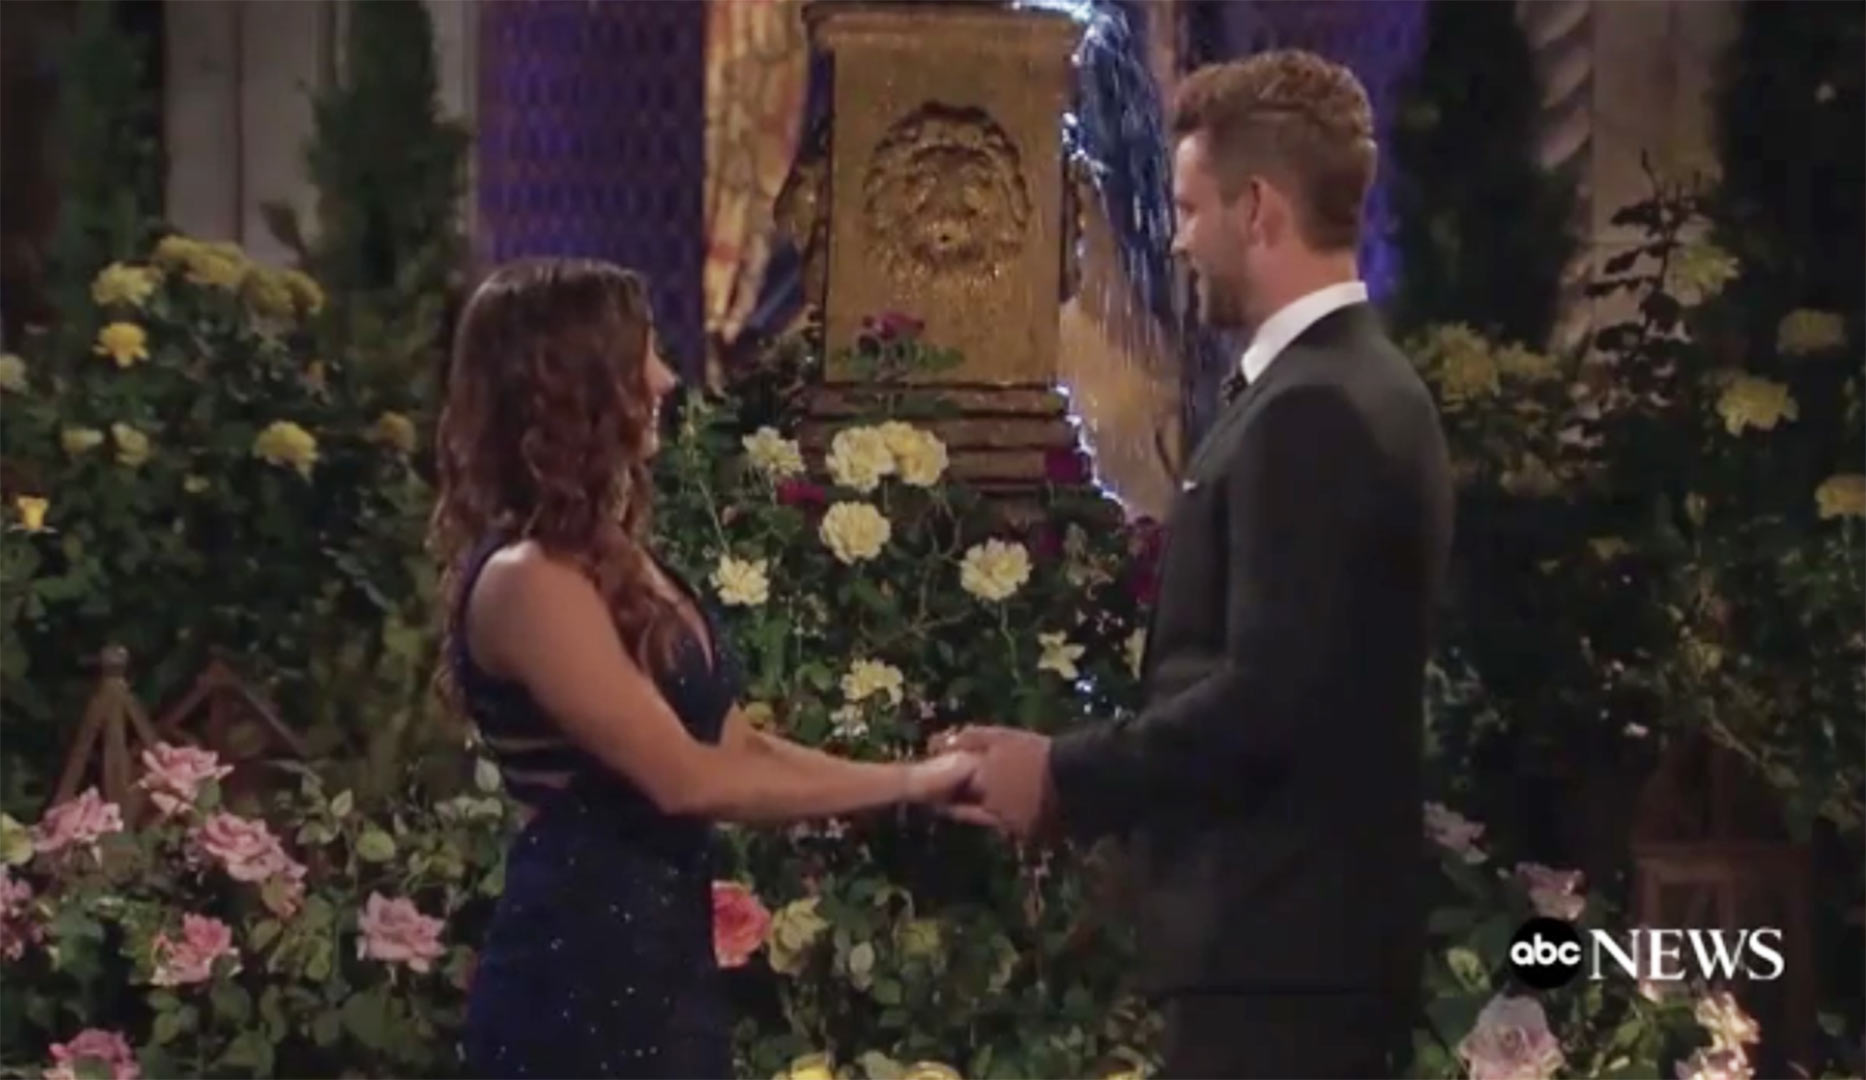 Nick Viall, Liz Sandoz - Liz Sandoz walked out of the limo and into Nick Viall's arms on The Bachelor season 21, but this was not their first introduction. Sandoz, who is best friends with Bachelor Nation favorite Jade Tolbert, revealed on a group date that she and the Wisconsin native, spent the night together at Jade and Tanner Tolbert's wedding in February 2016.